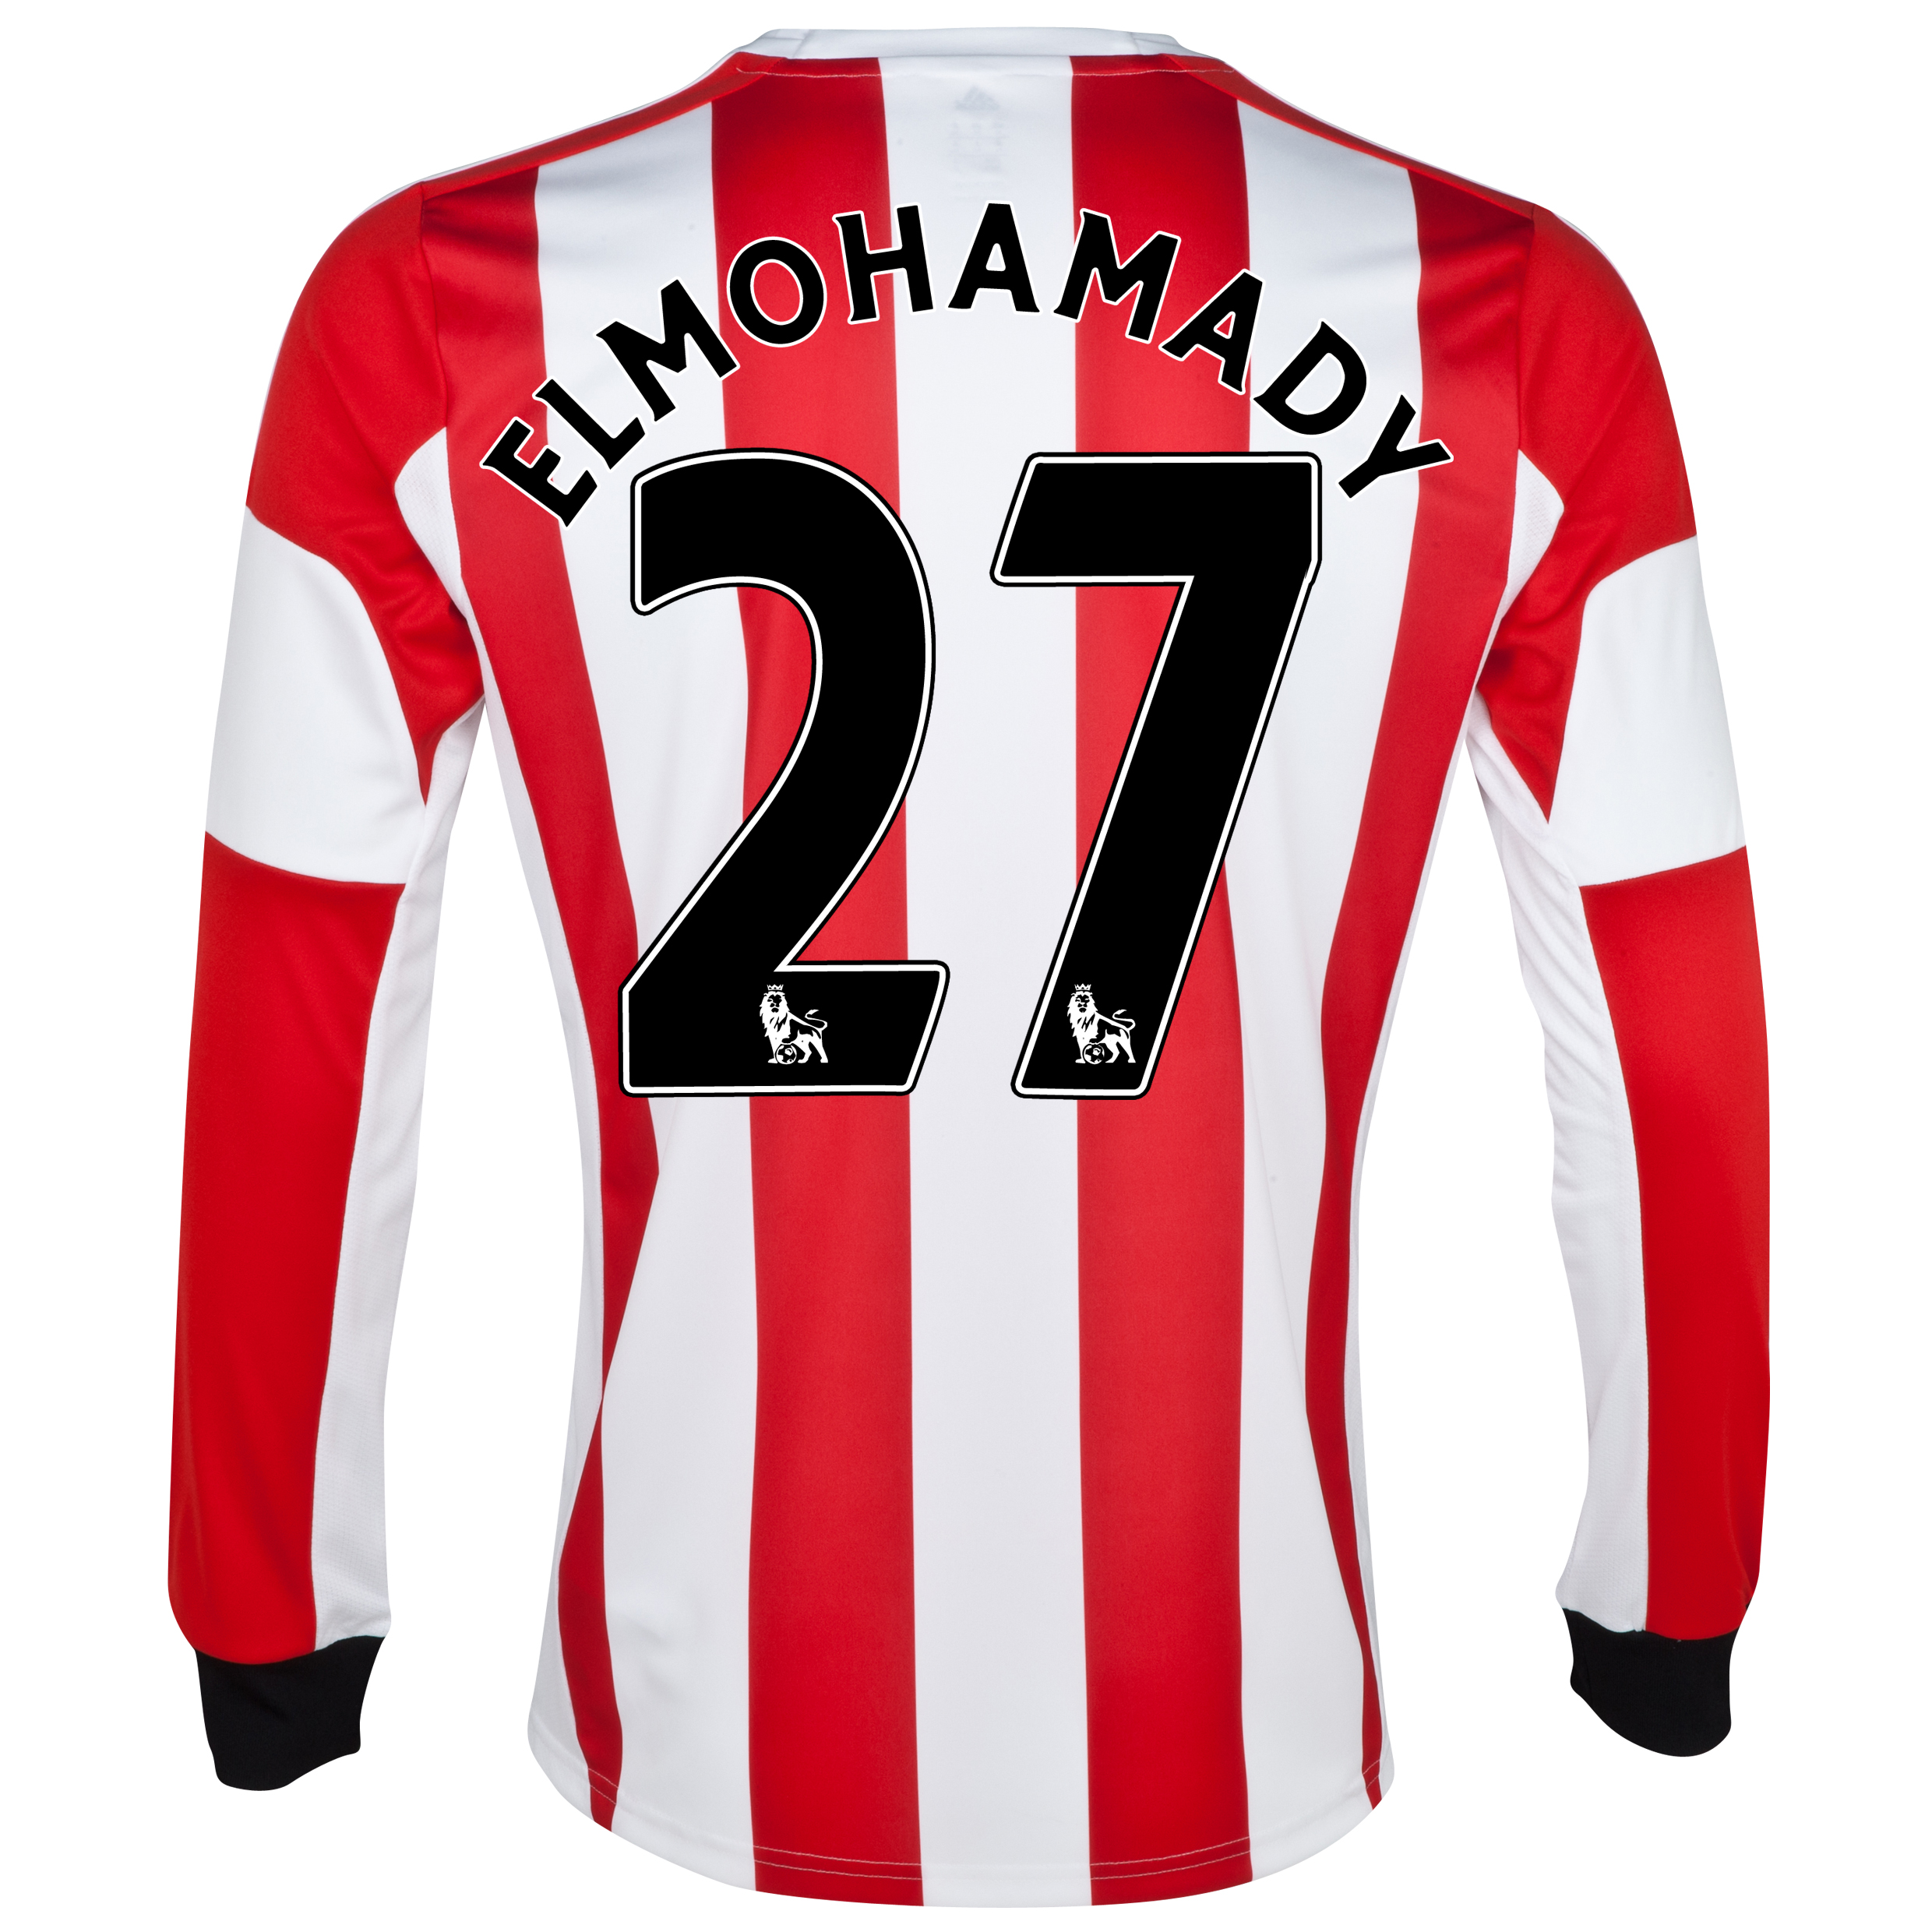 Sunderland Home Shirt 2013/14 - Long Sleeved  with Elmohamady 27 printing